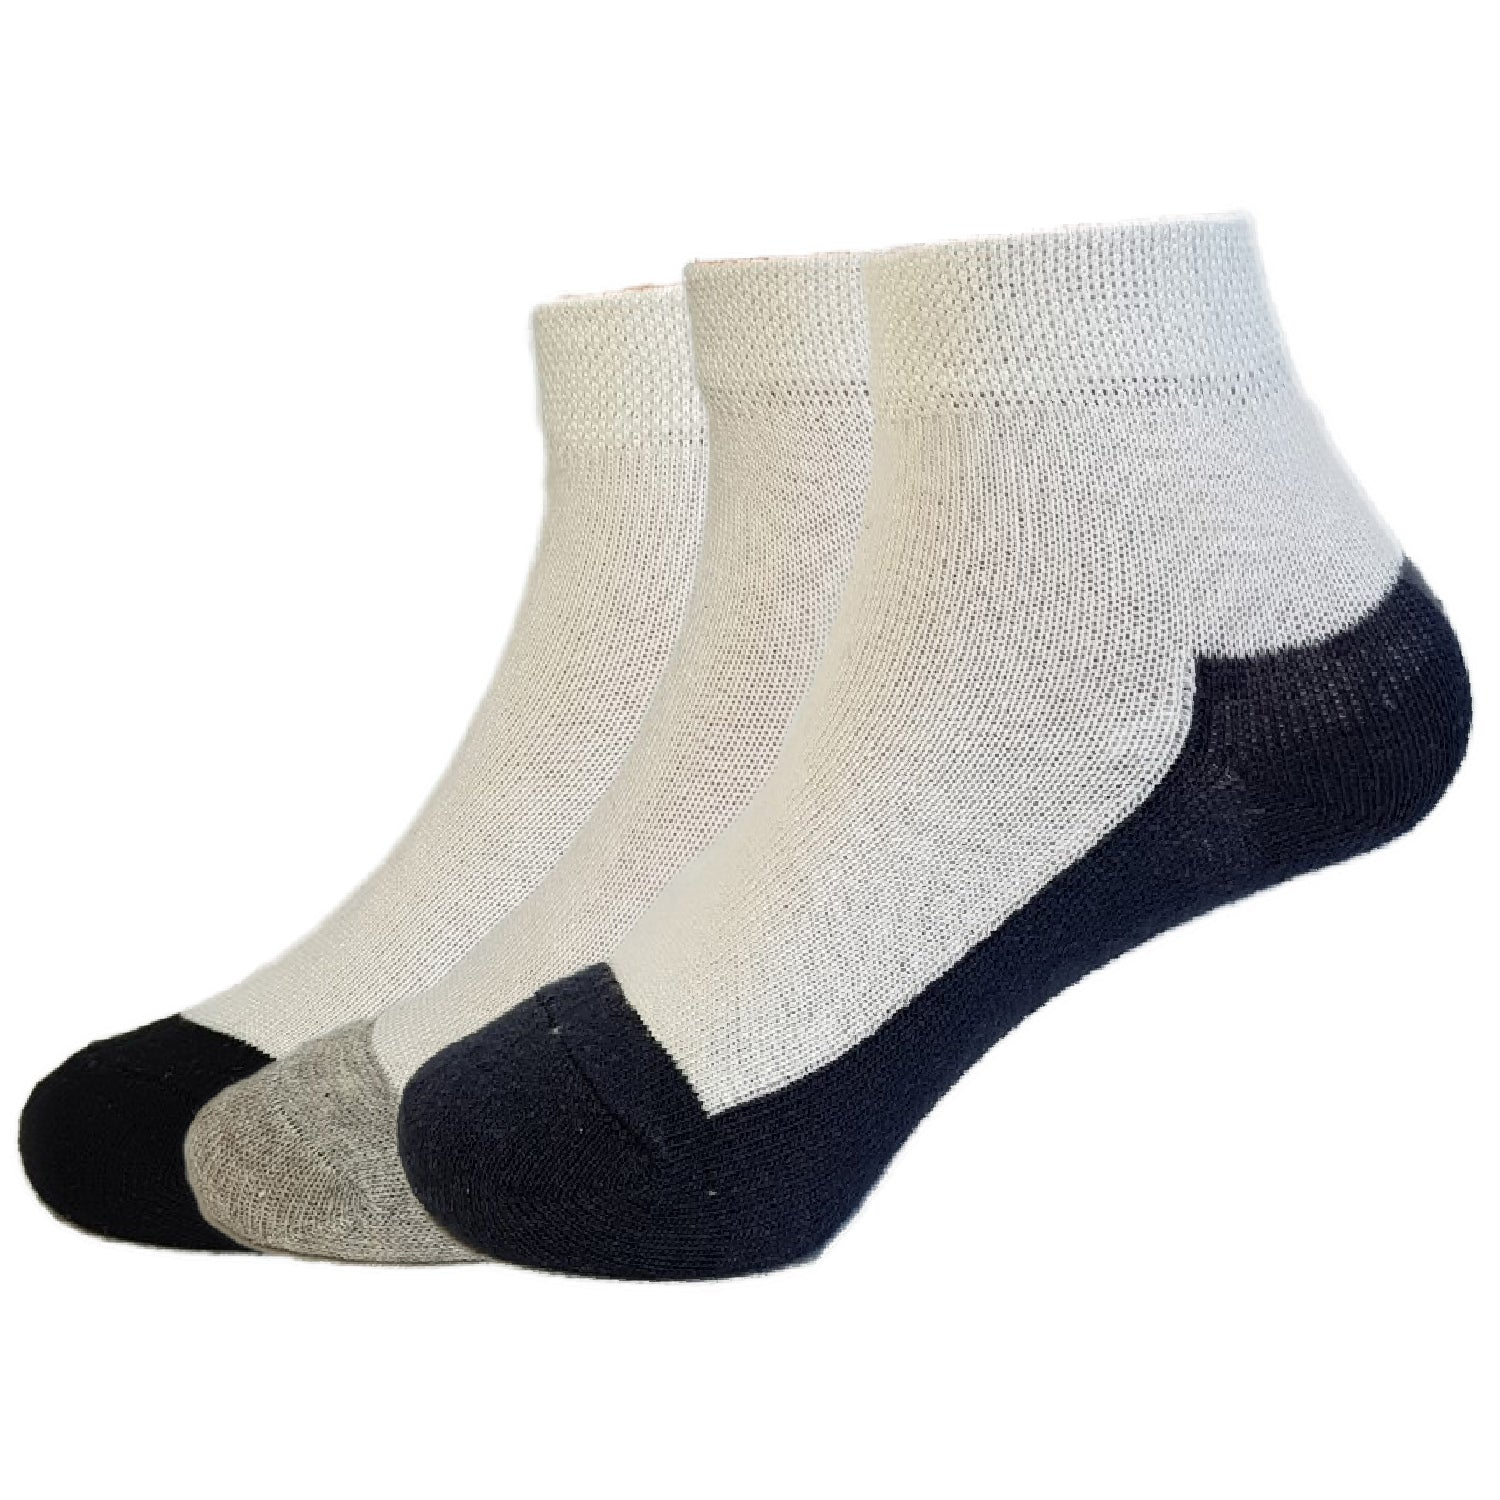 3-Pack Ankle Patterned 503 Style Socks